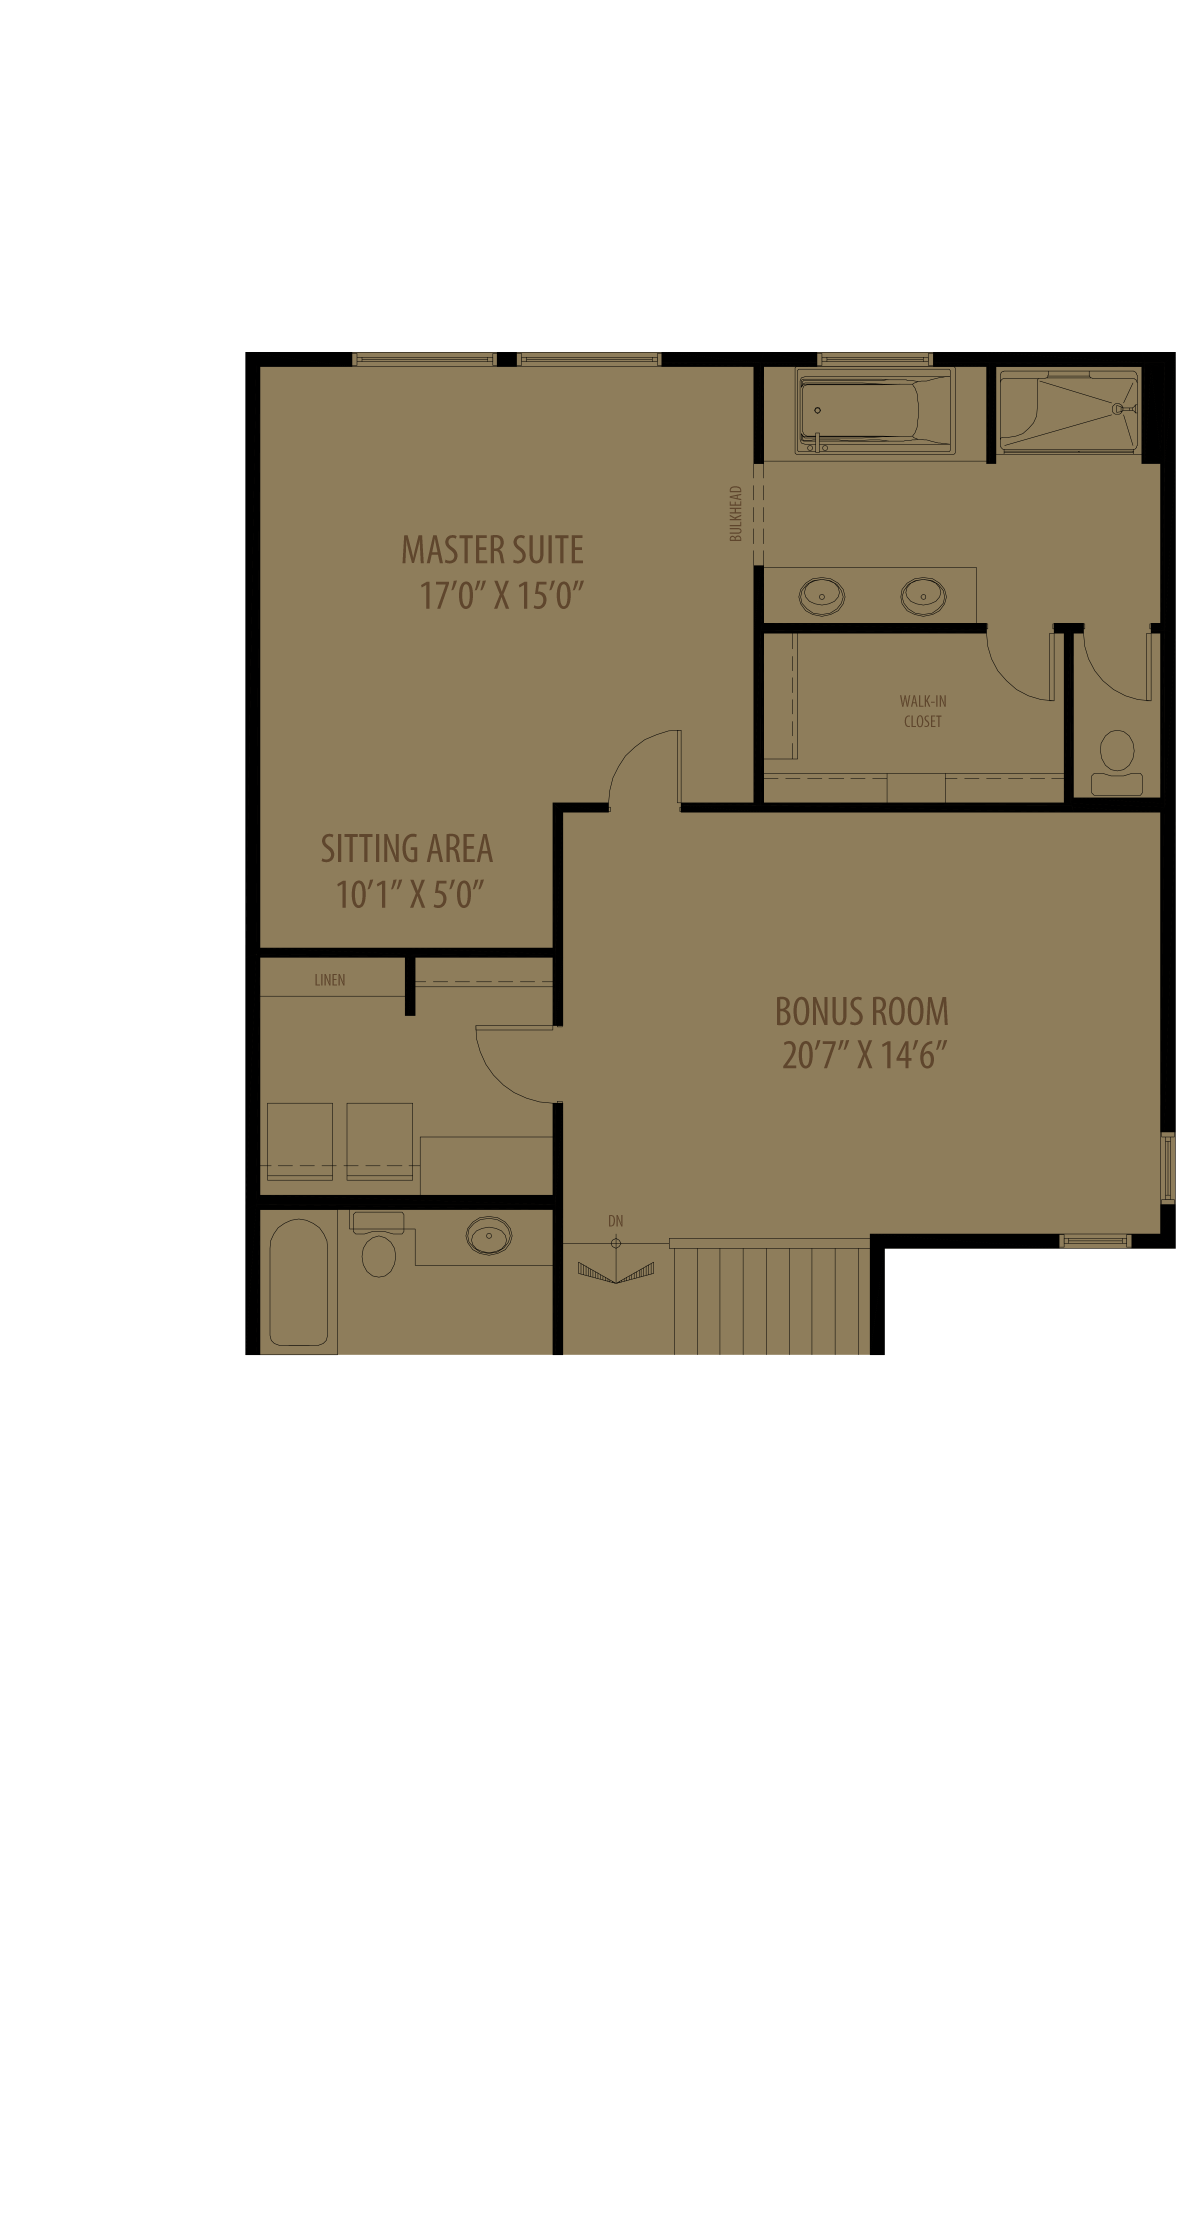 Center Bonus Room